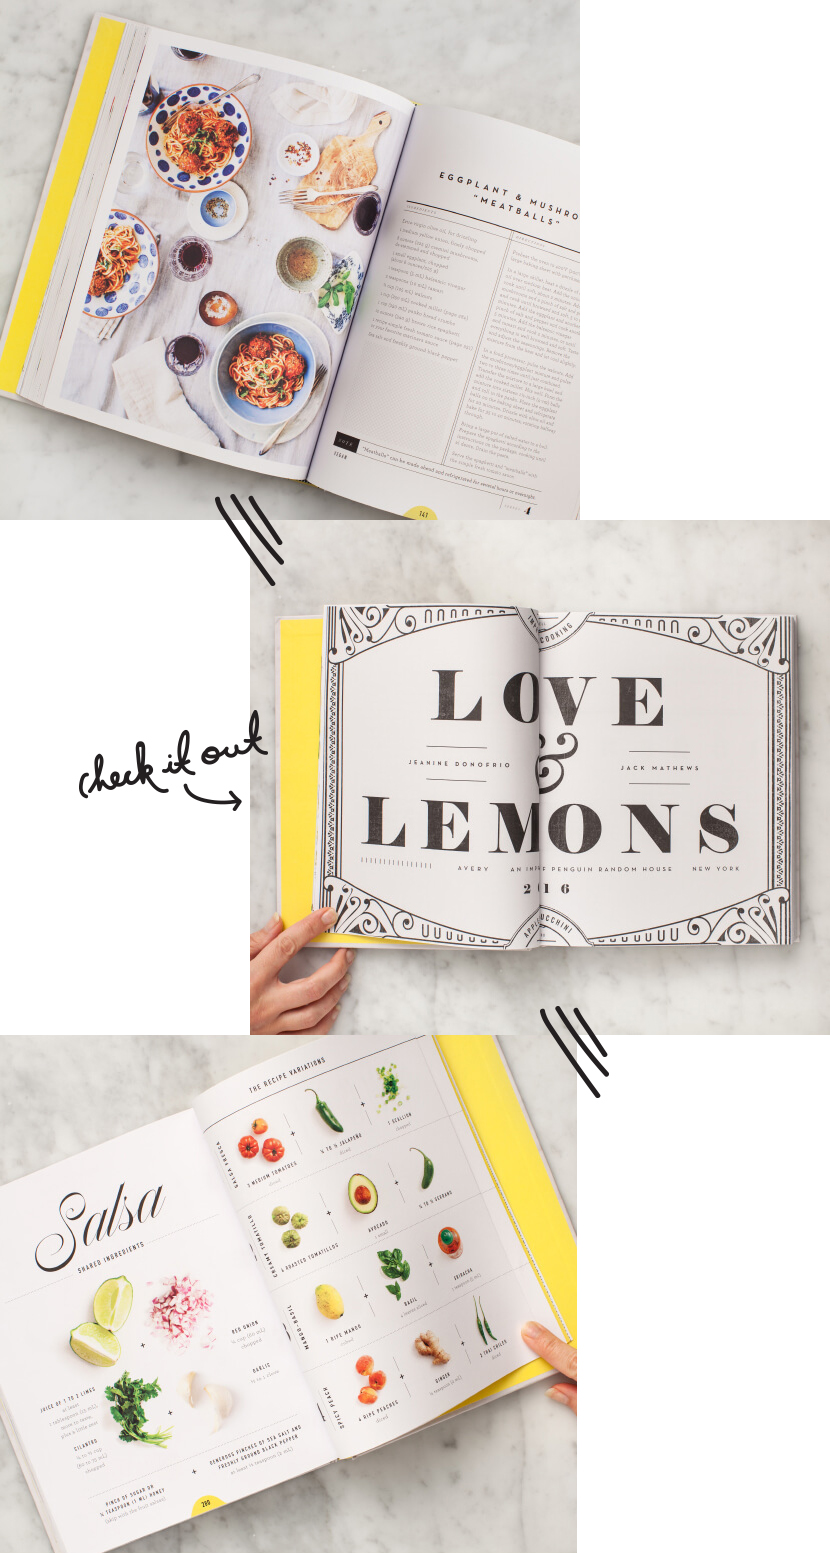 Love and Lemons Cookbook | The Fresh Exchange